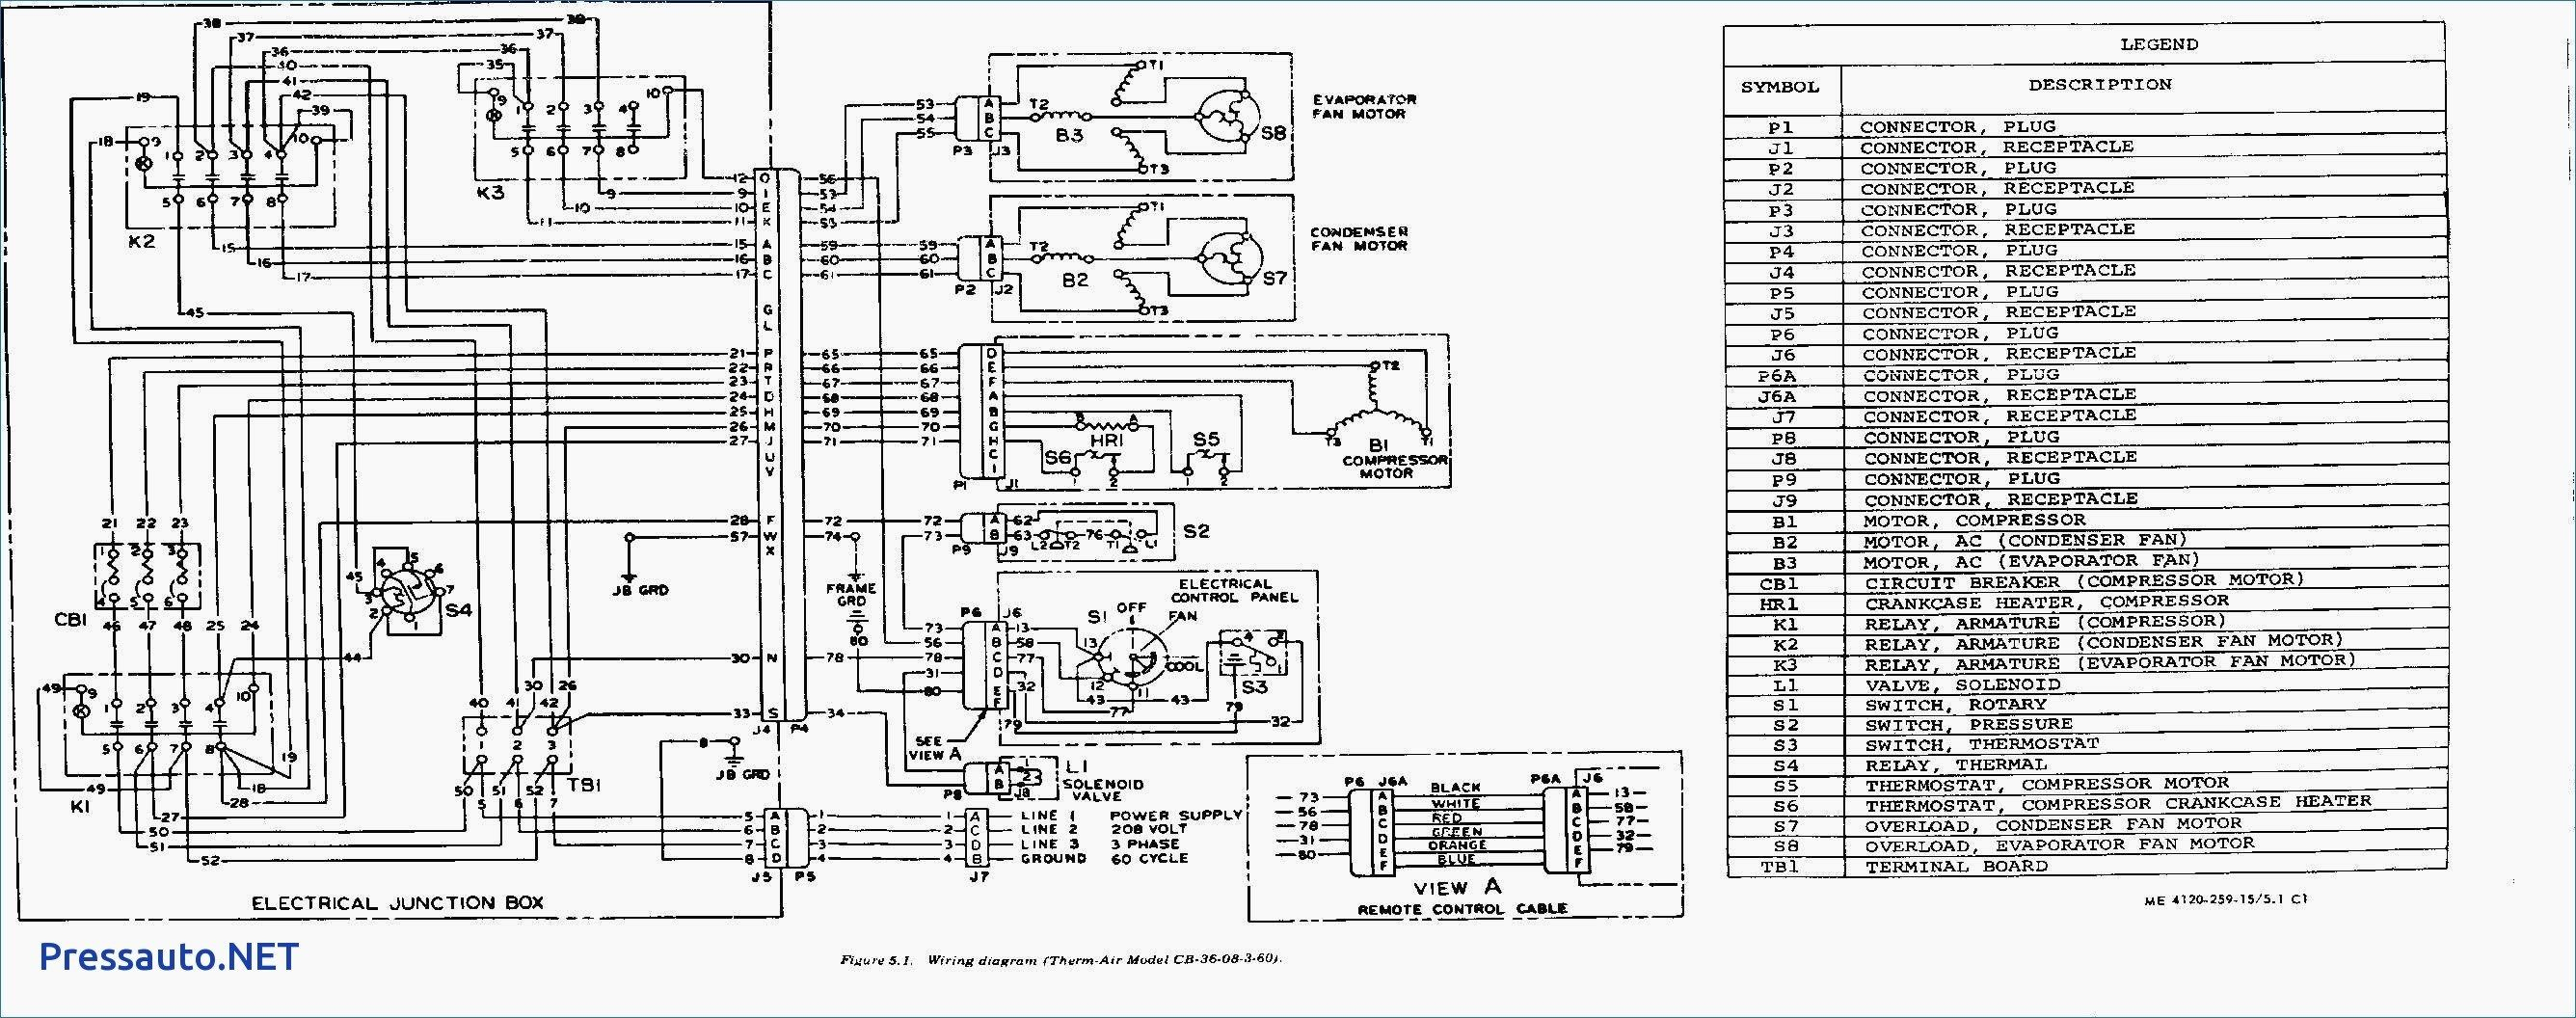 Trane Rooftop Unit Wiring Diagram | Schematic Diagram - Trane Rooftop Unit Wiring Diagram